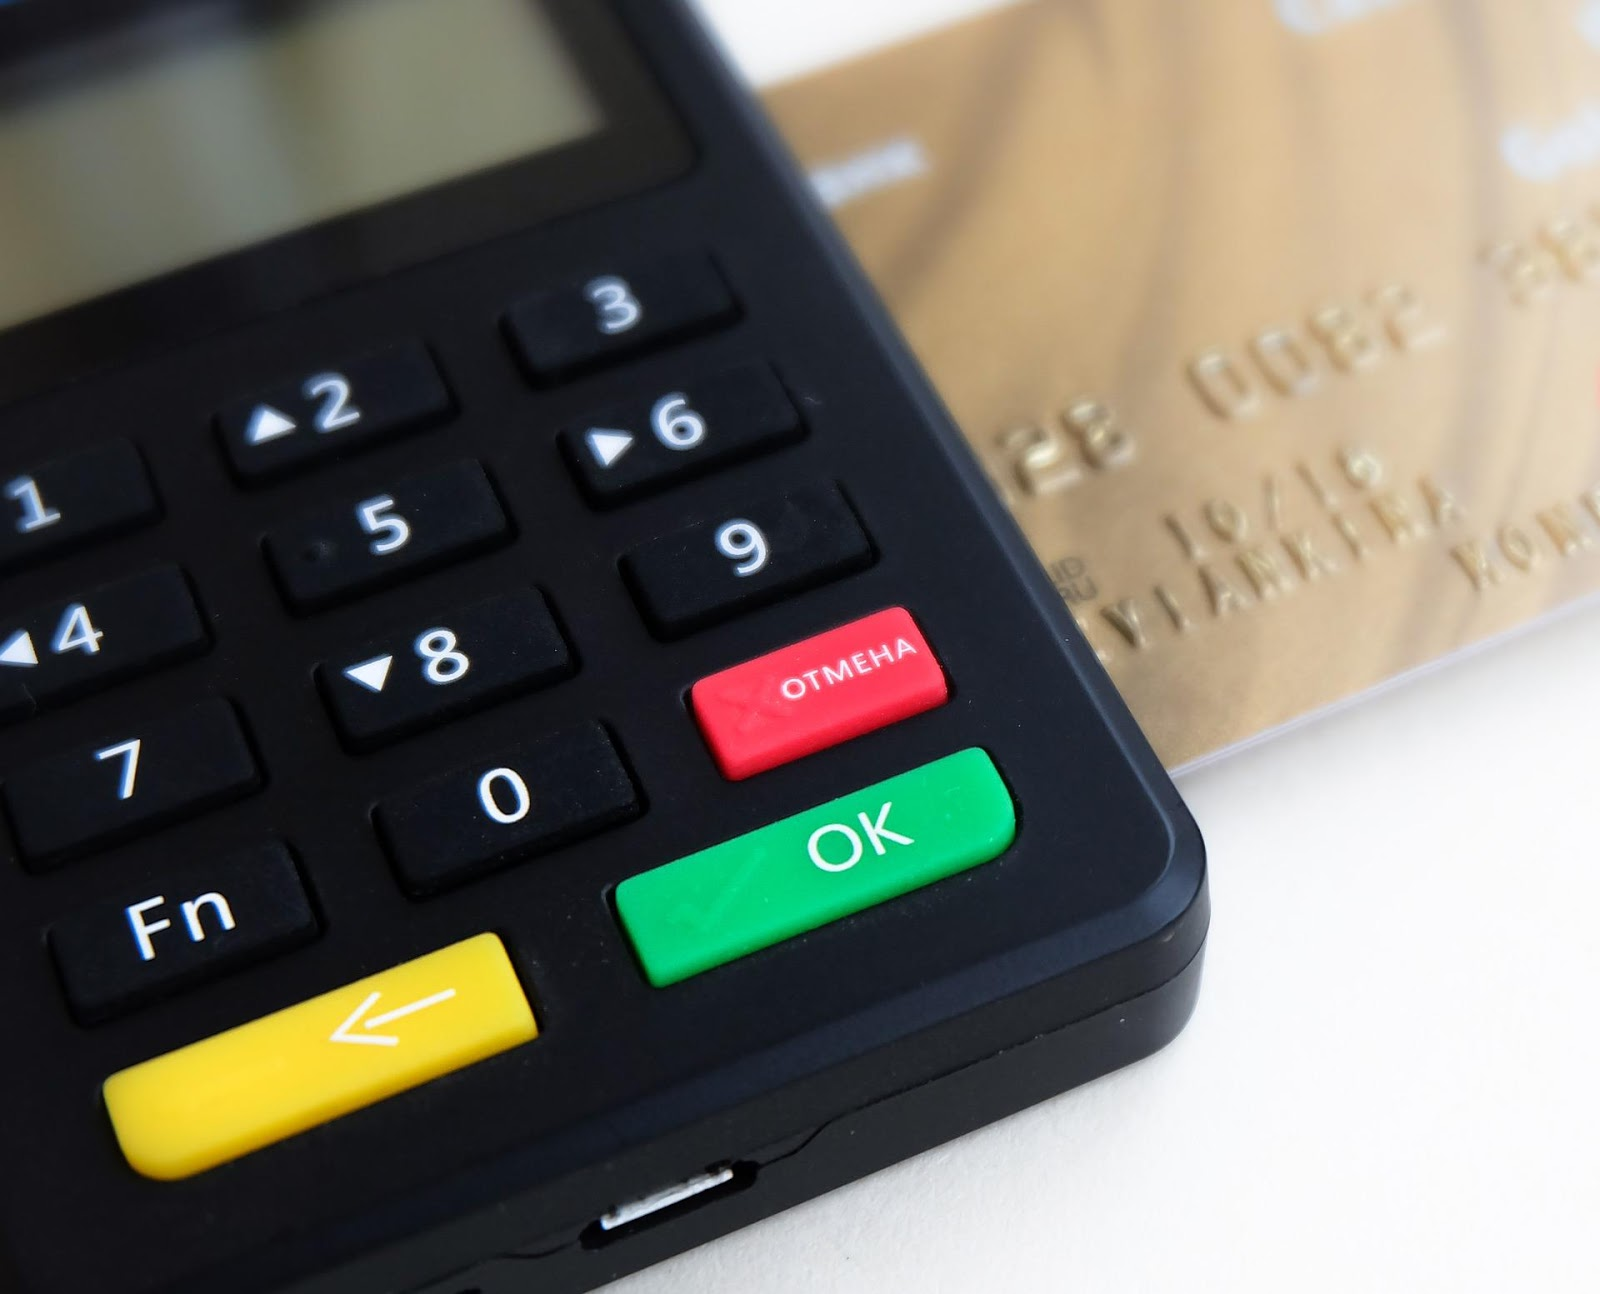 is cashless payment good or bad?